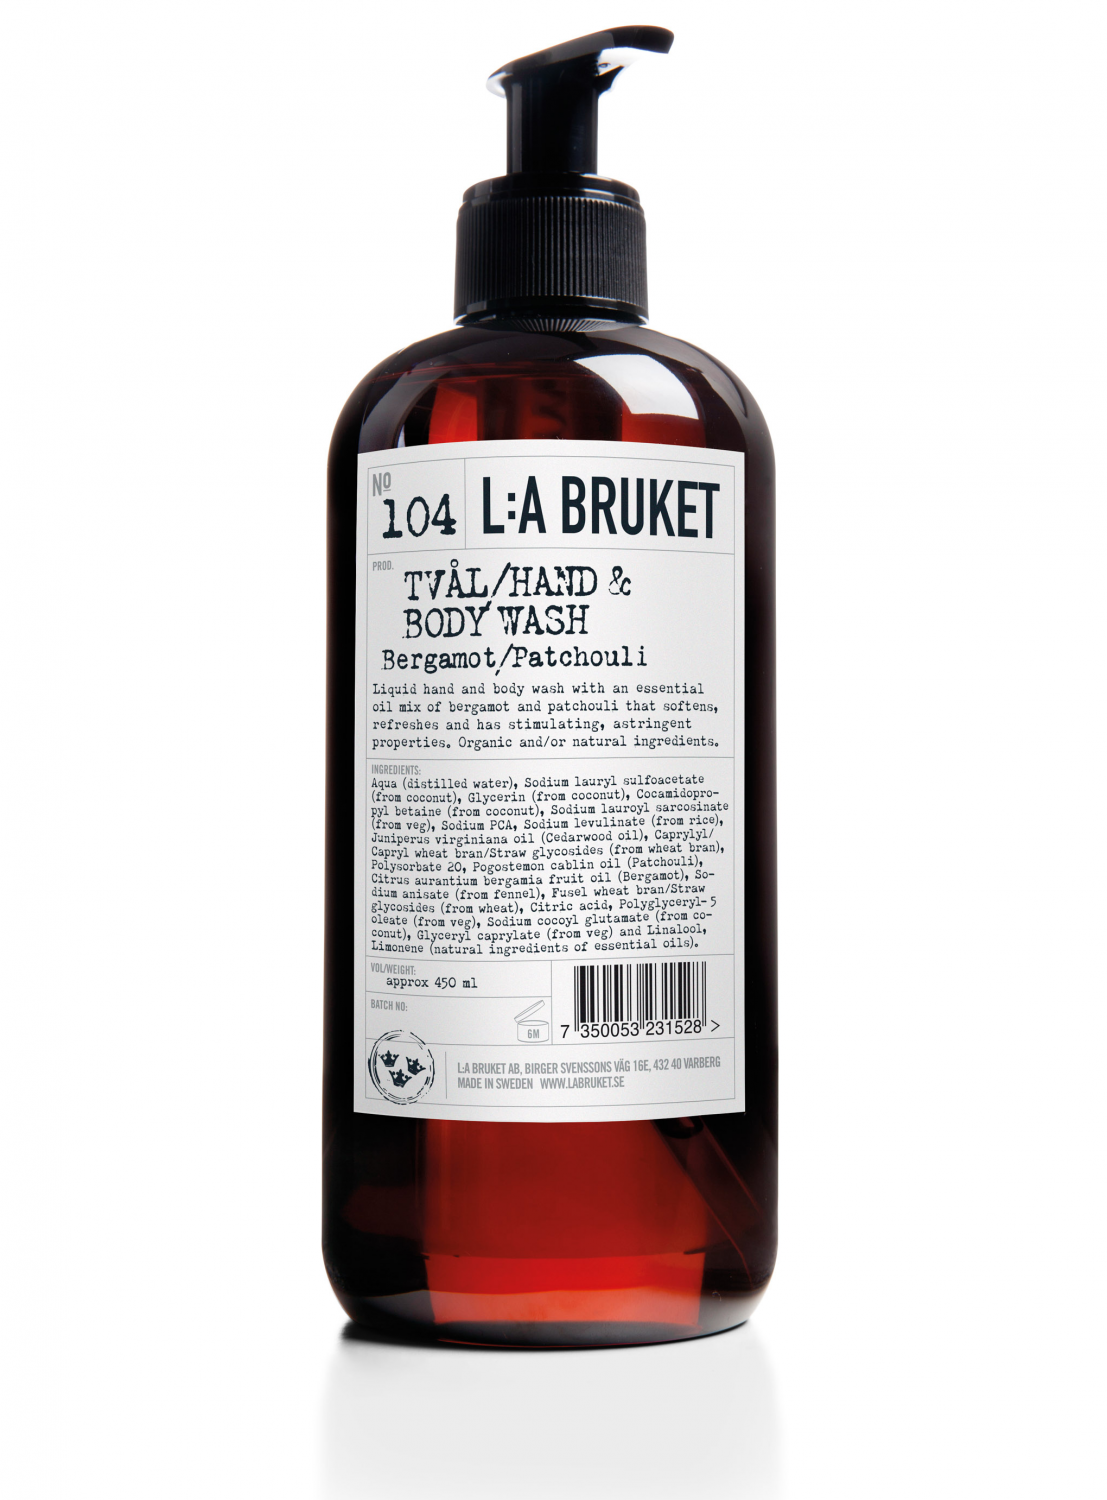 Liquid soap/body wash in a brown bottle with pump with scents of bergamot and patchouli, containing 450 ml.